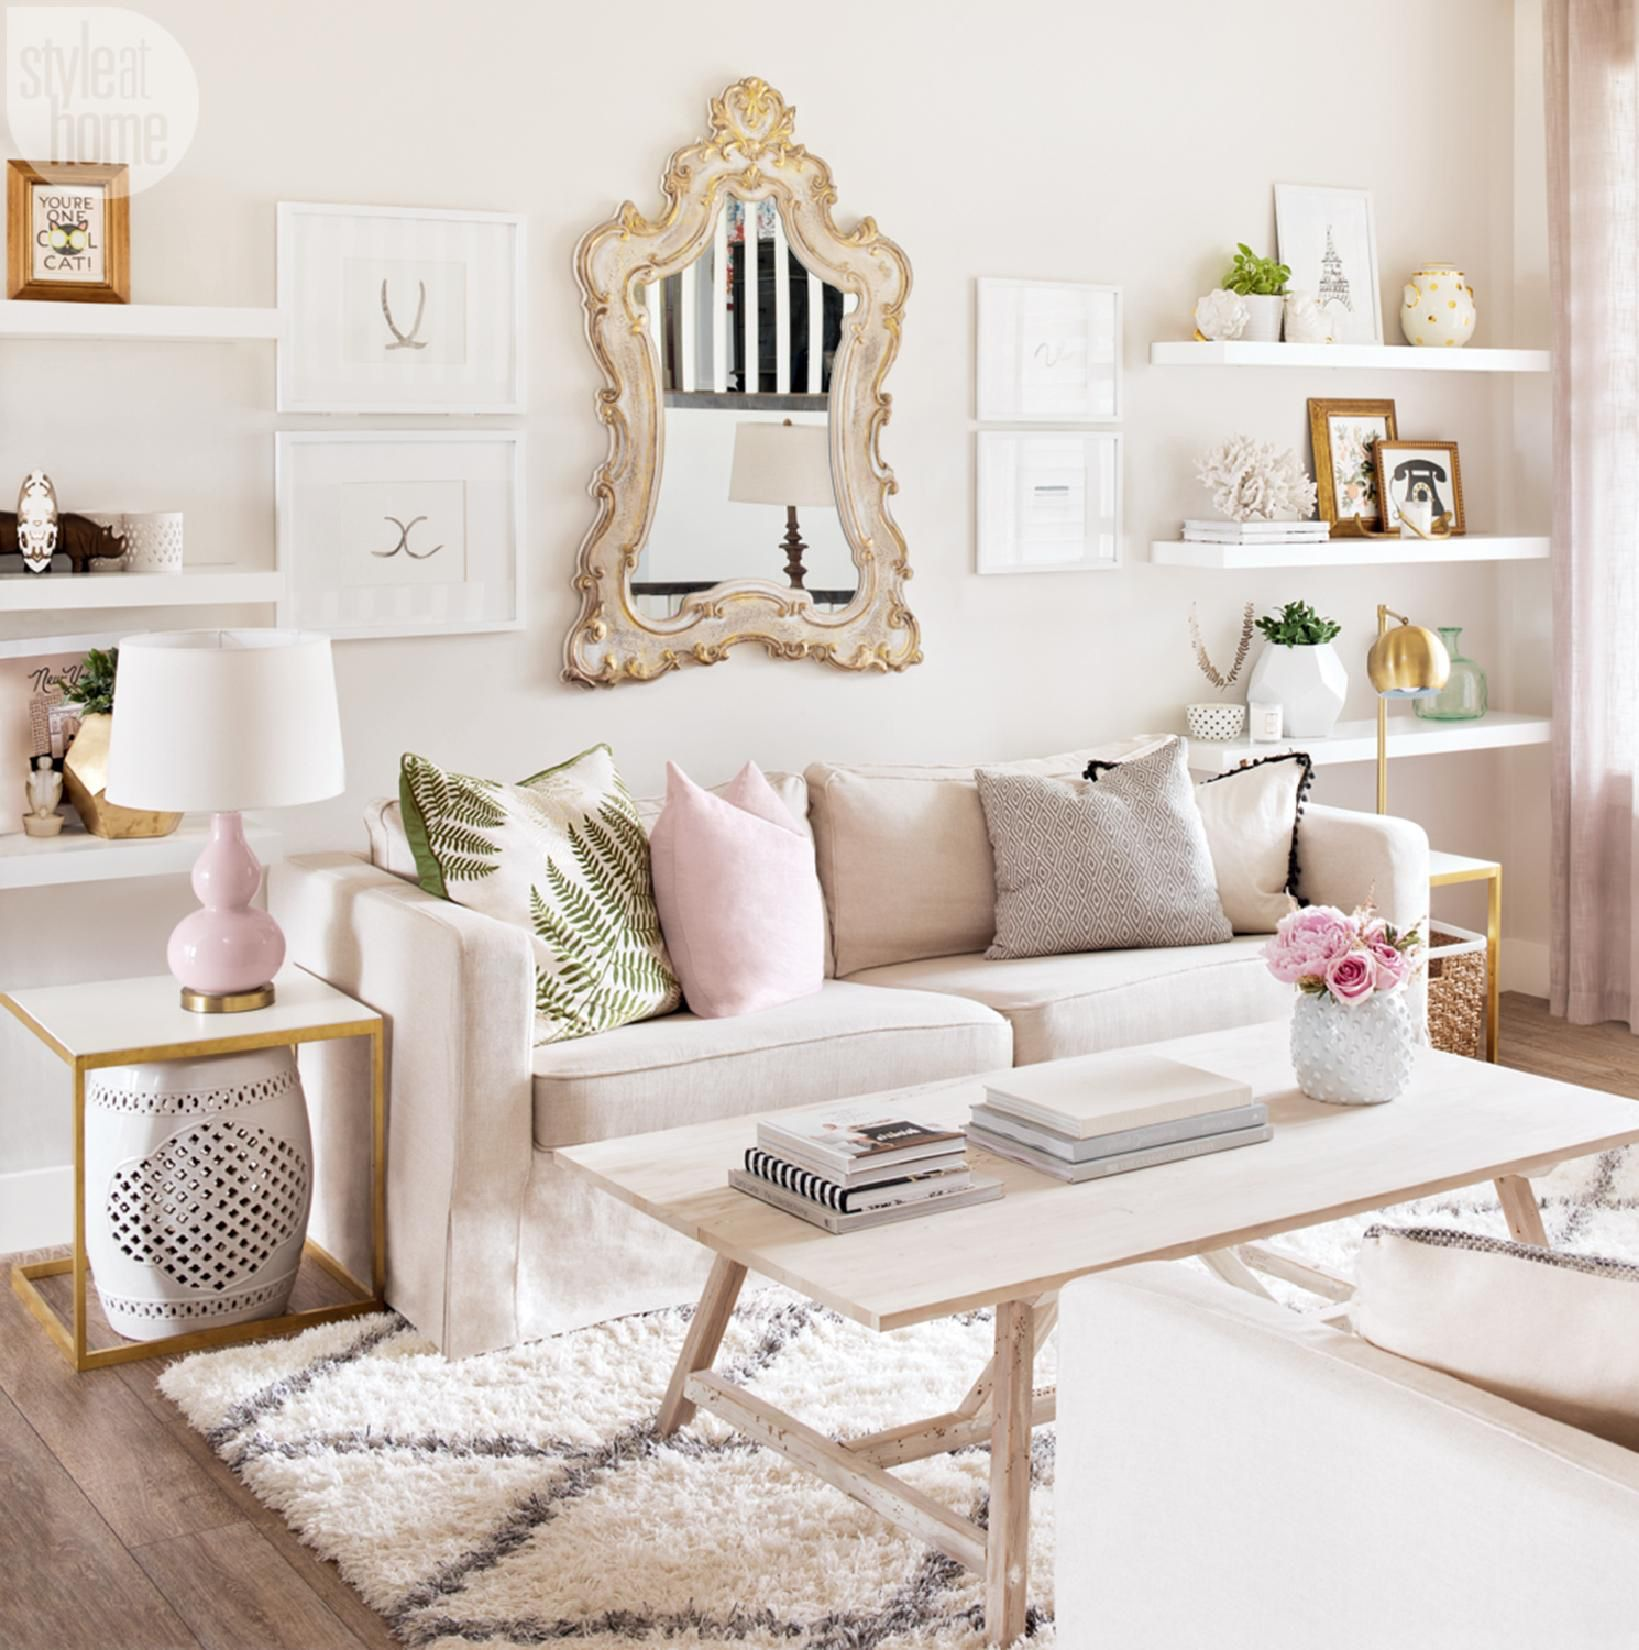 Leitmotiv | LIVING ROOM | Pinterest | Beige, Living rooms and Room